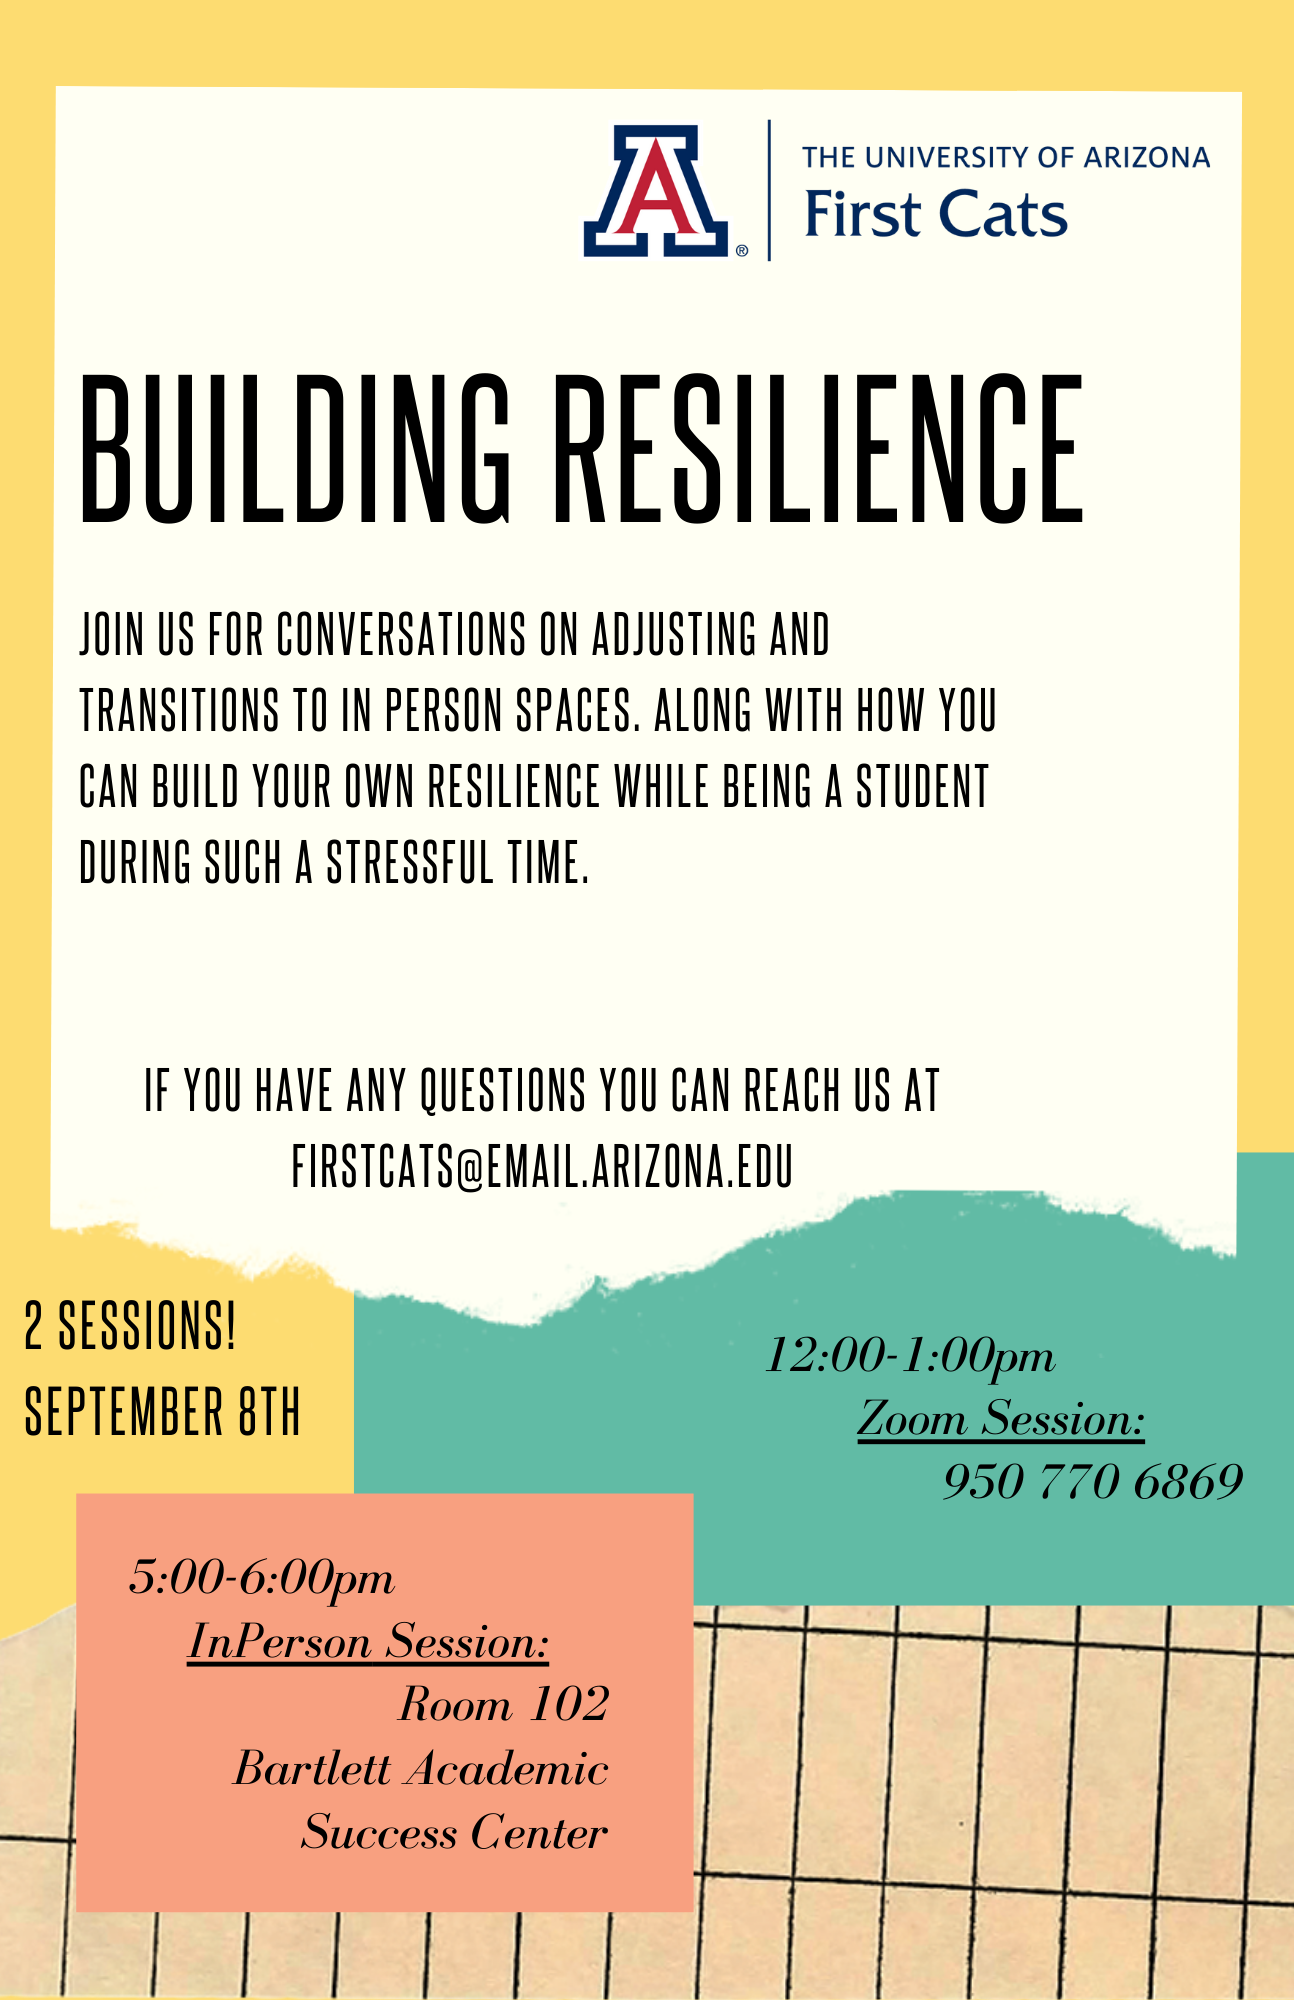 Building Resilience. Join us for conversations on adjusting and transitioning to in person spaces. Along with how you can build your own resilience while being a student during such a stressful time.  Wednesday, September 8, 2021 12:00pm and 5:00 pm.